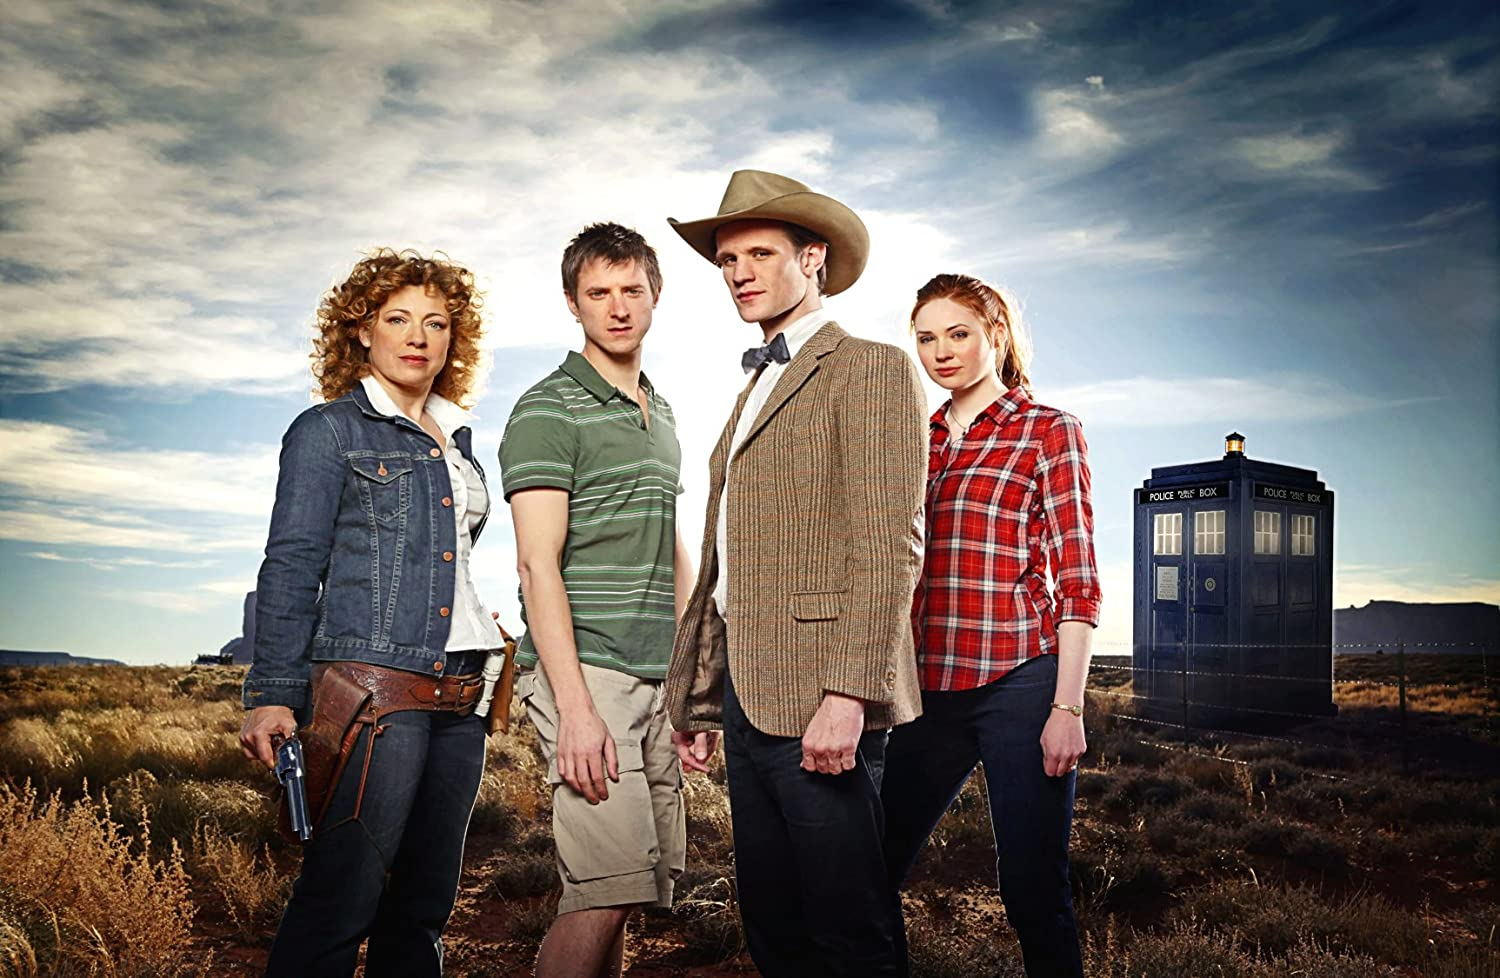 Dr. Who is about to test his friendships with River, Rory and Amy.